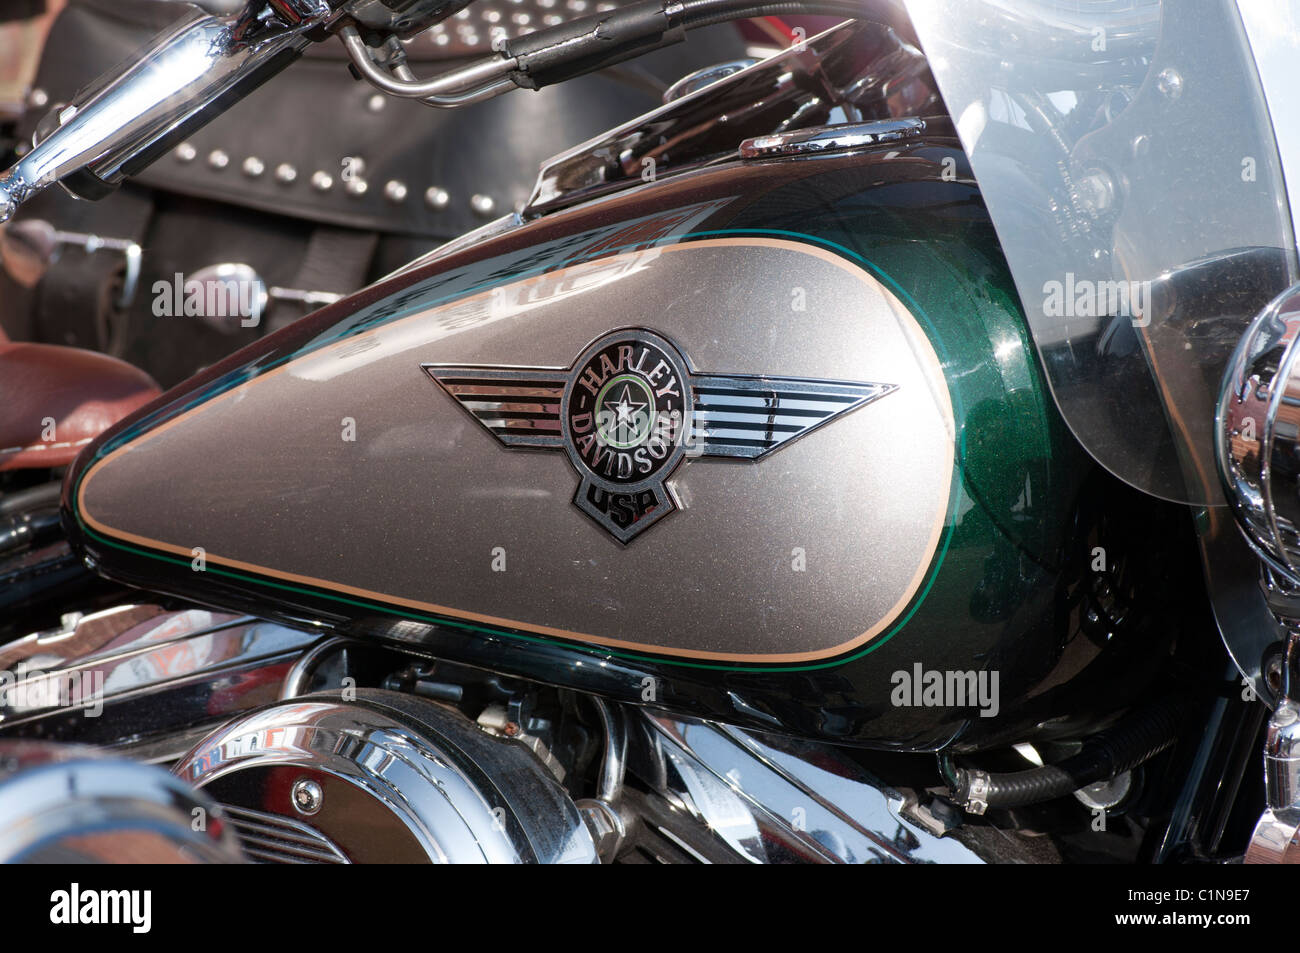 harley davidson motorcycle fuel tank with logo stock photo